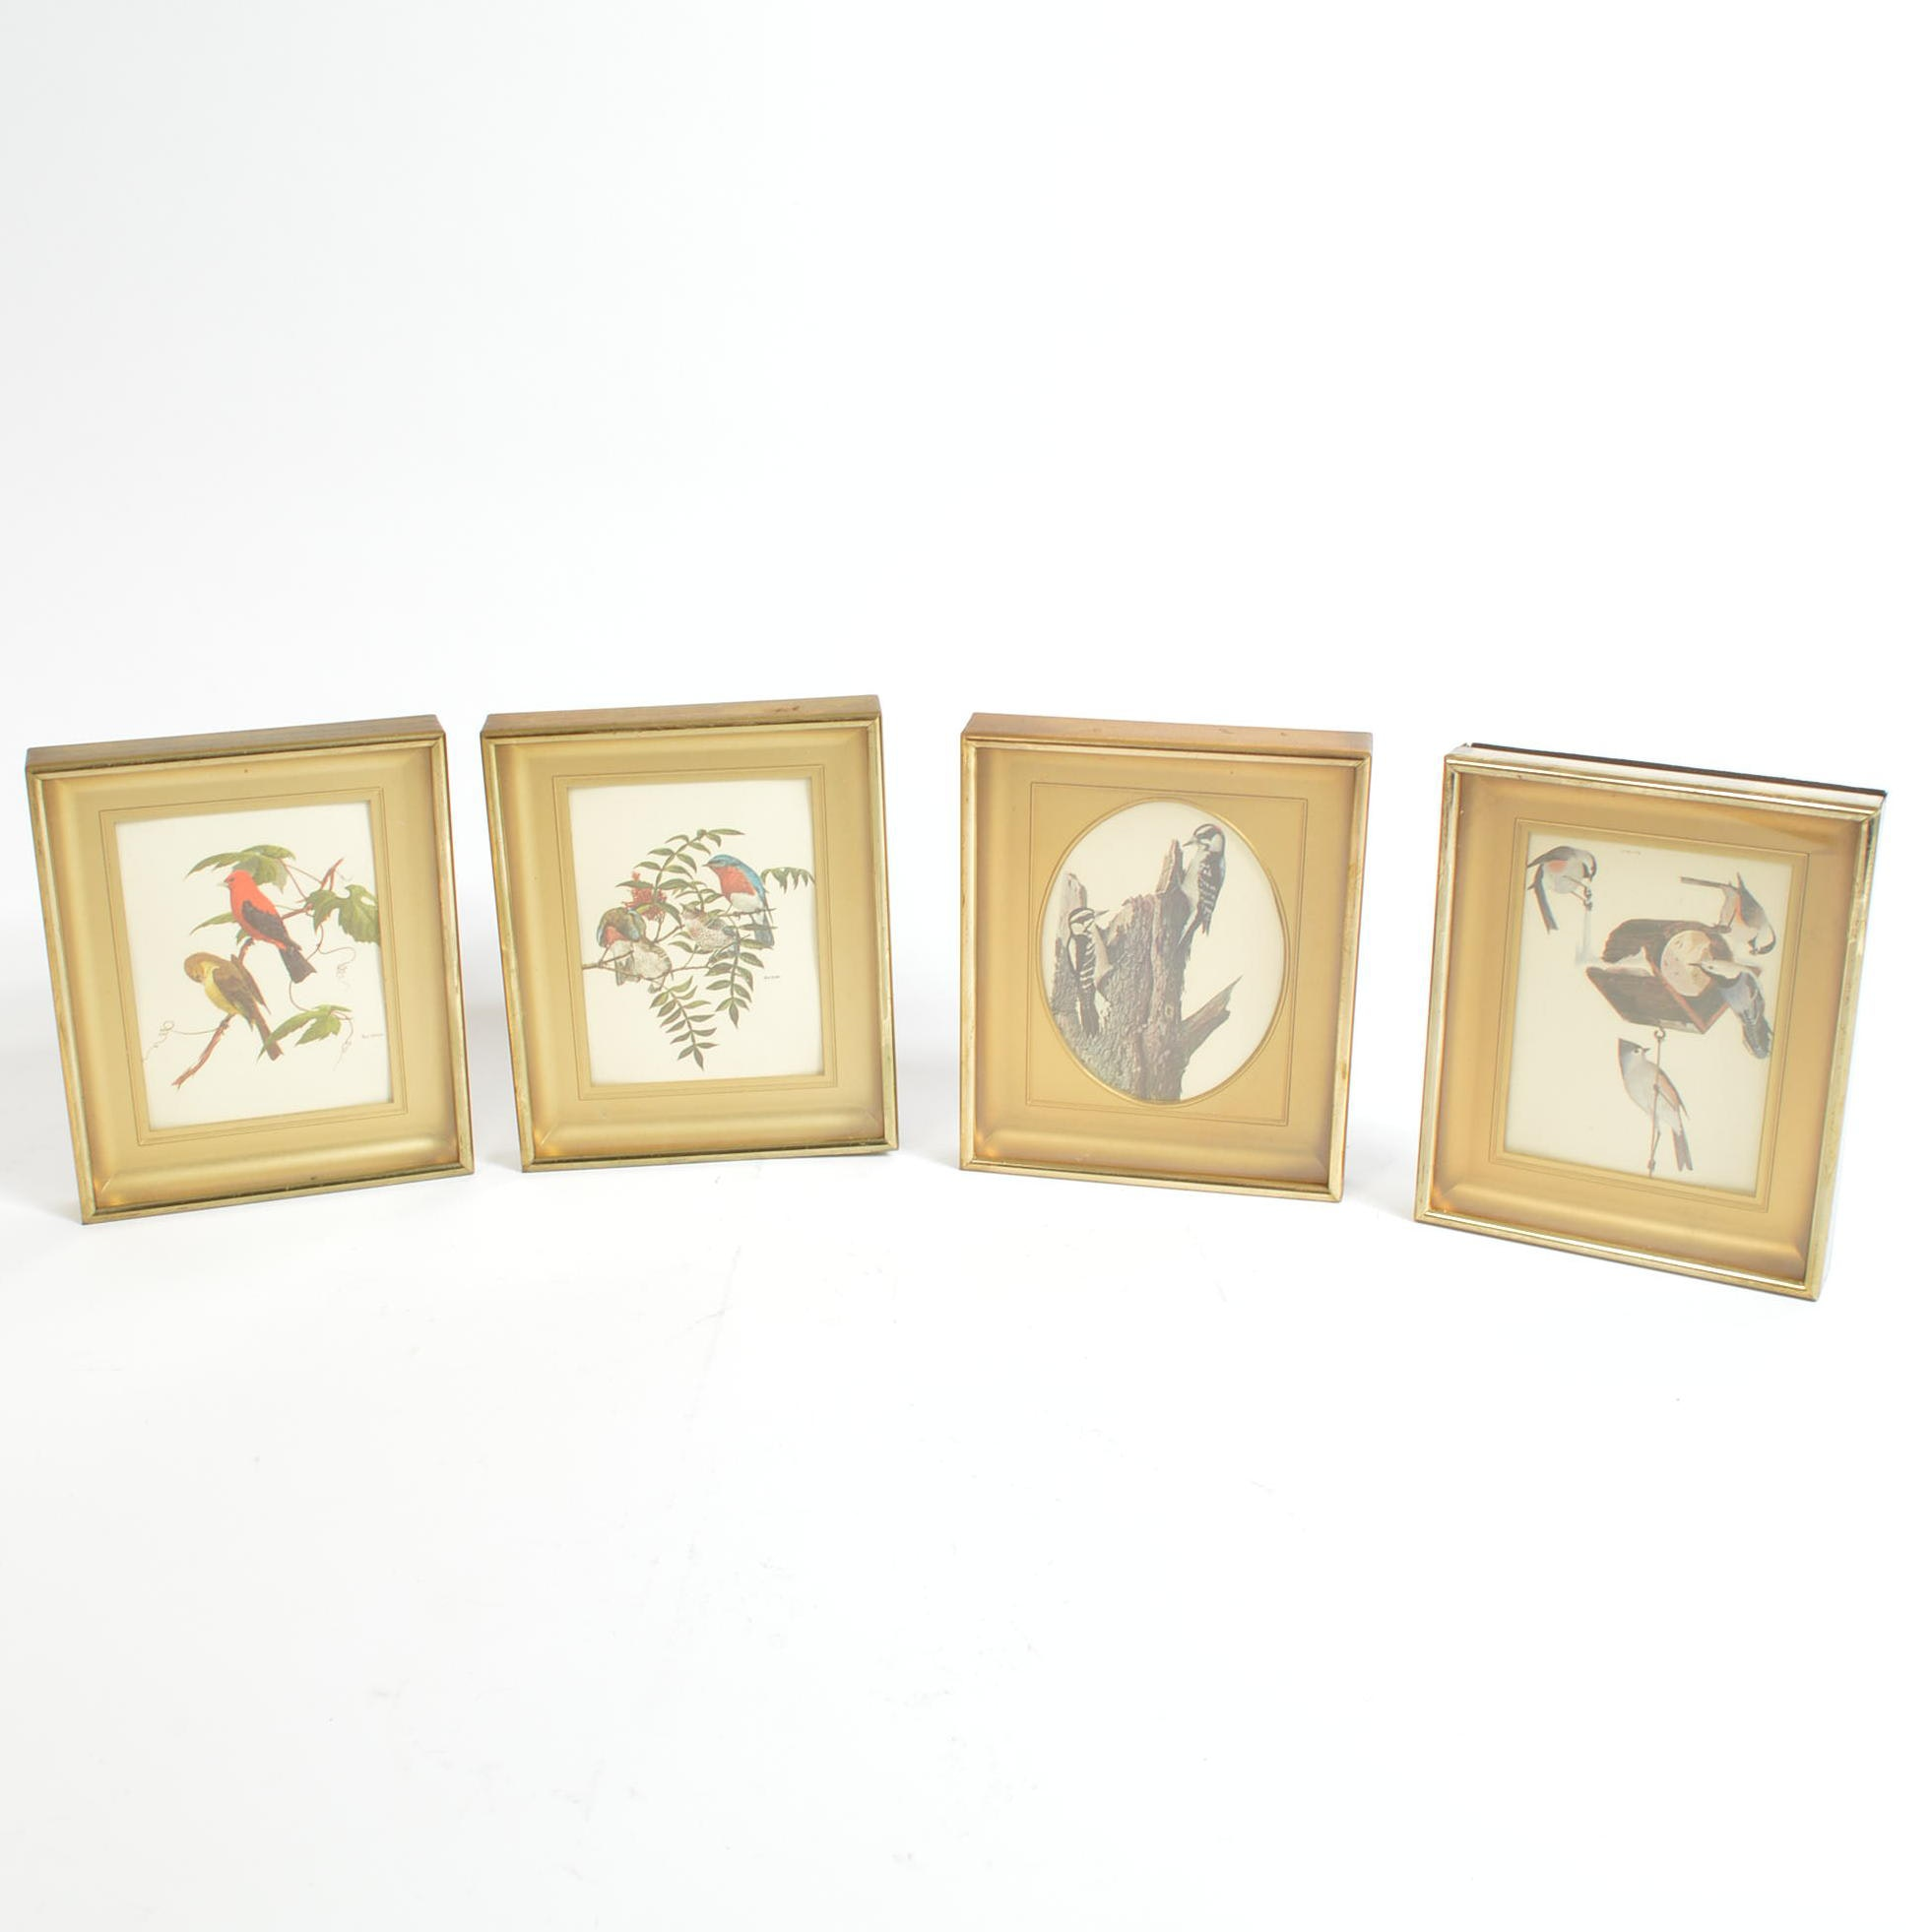 Miniature Framed Offset Lithographs After Ray Harm